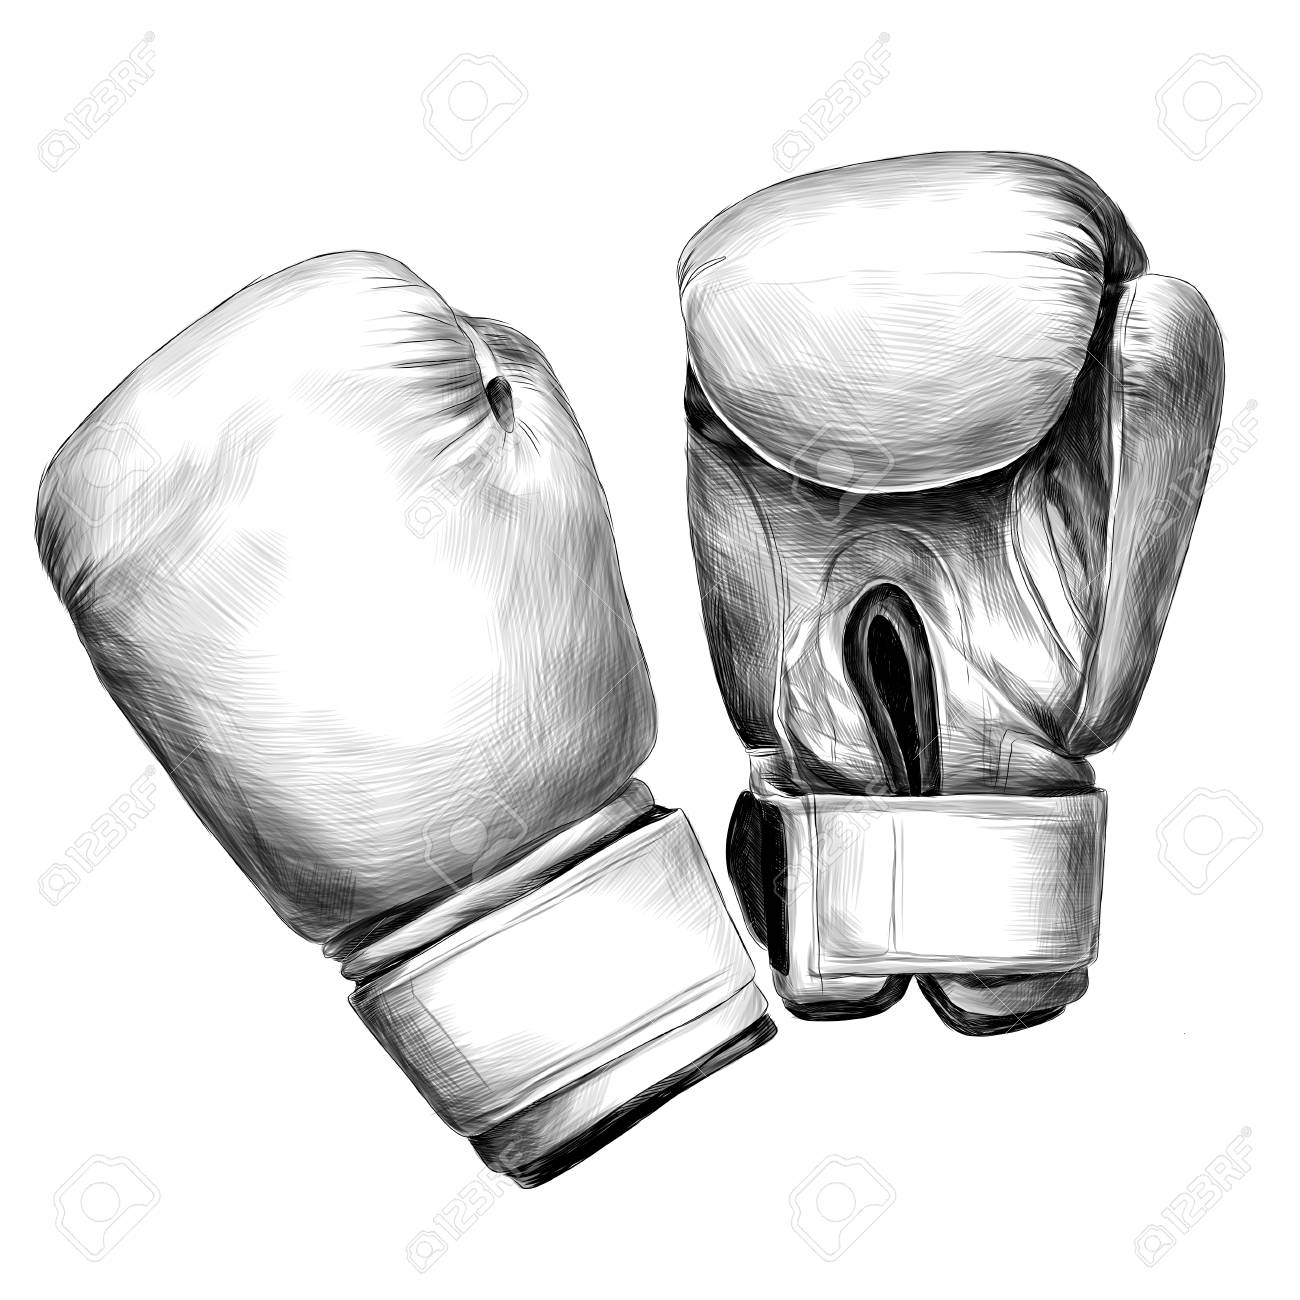 Boxing gloves sketch vector graphics monochrome black and white drawing stock vector 96185957